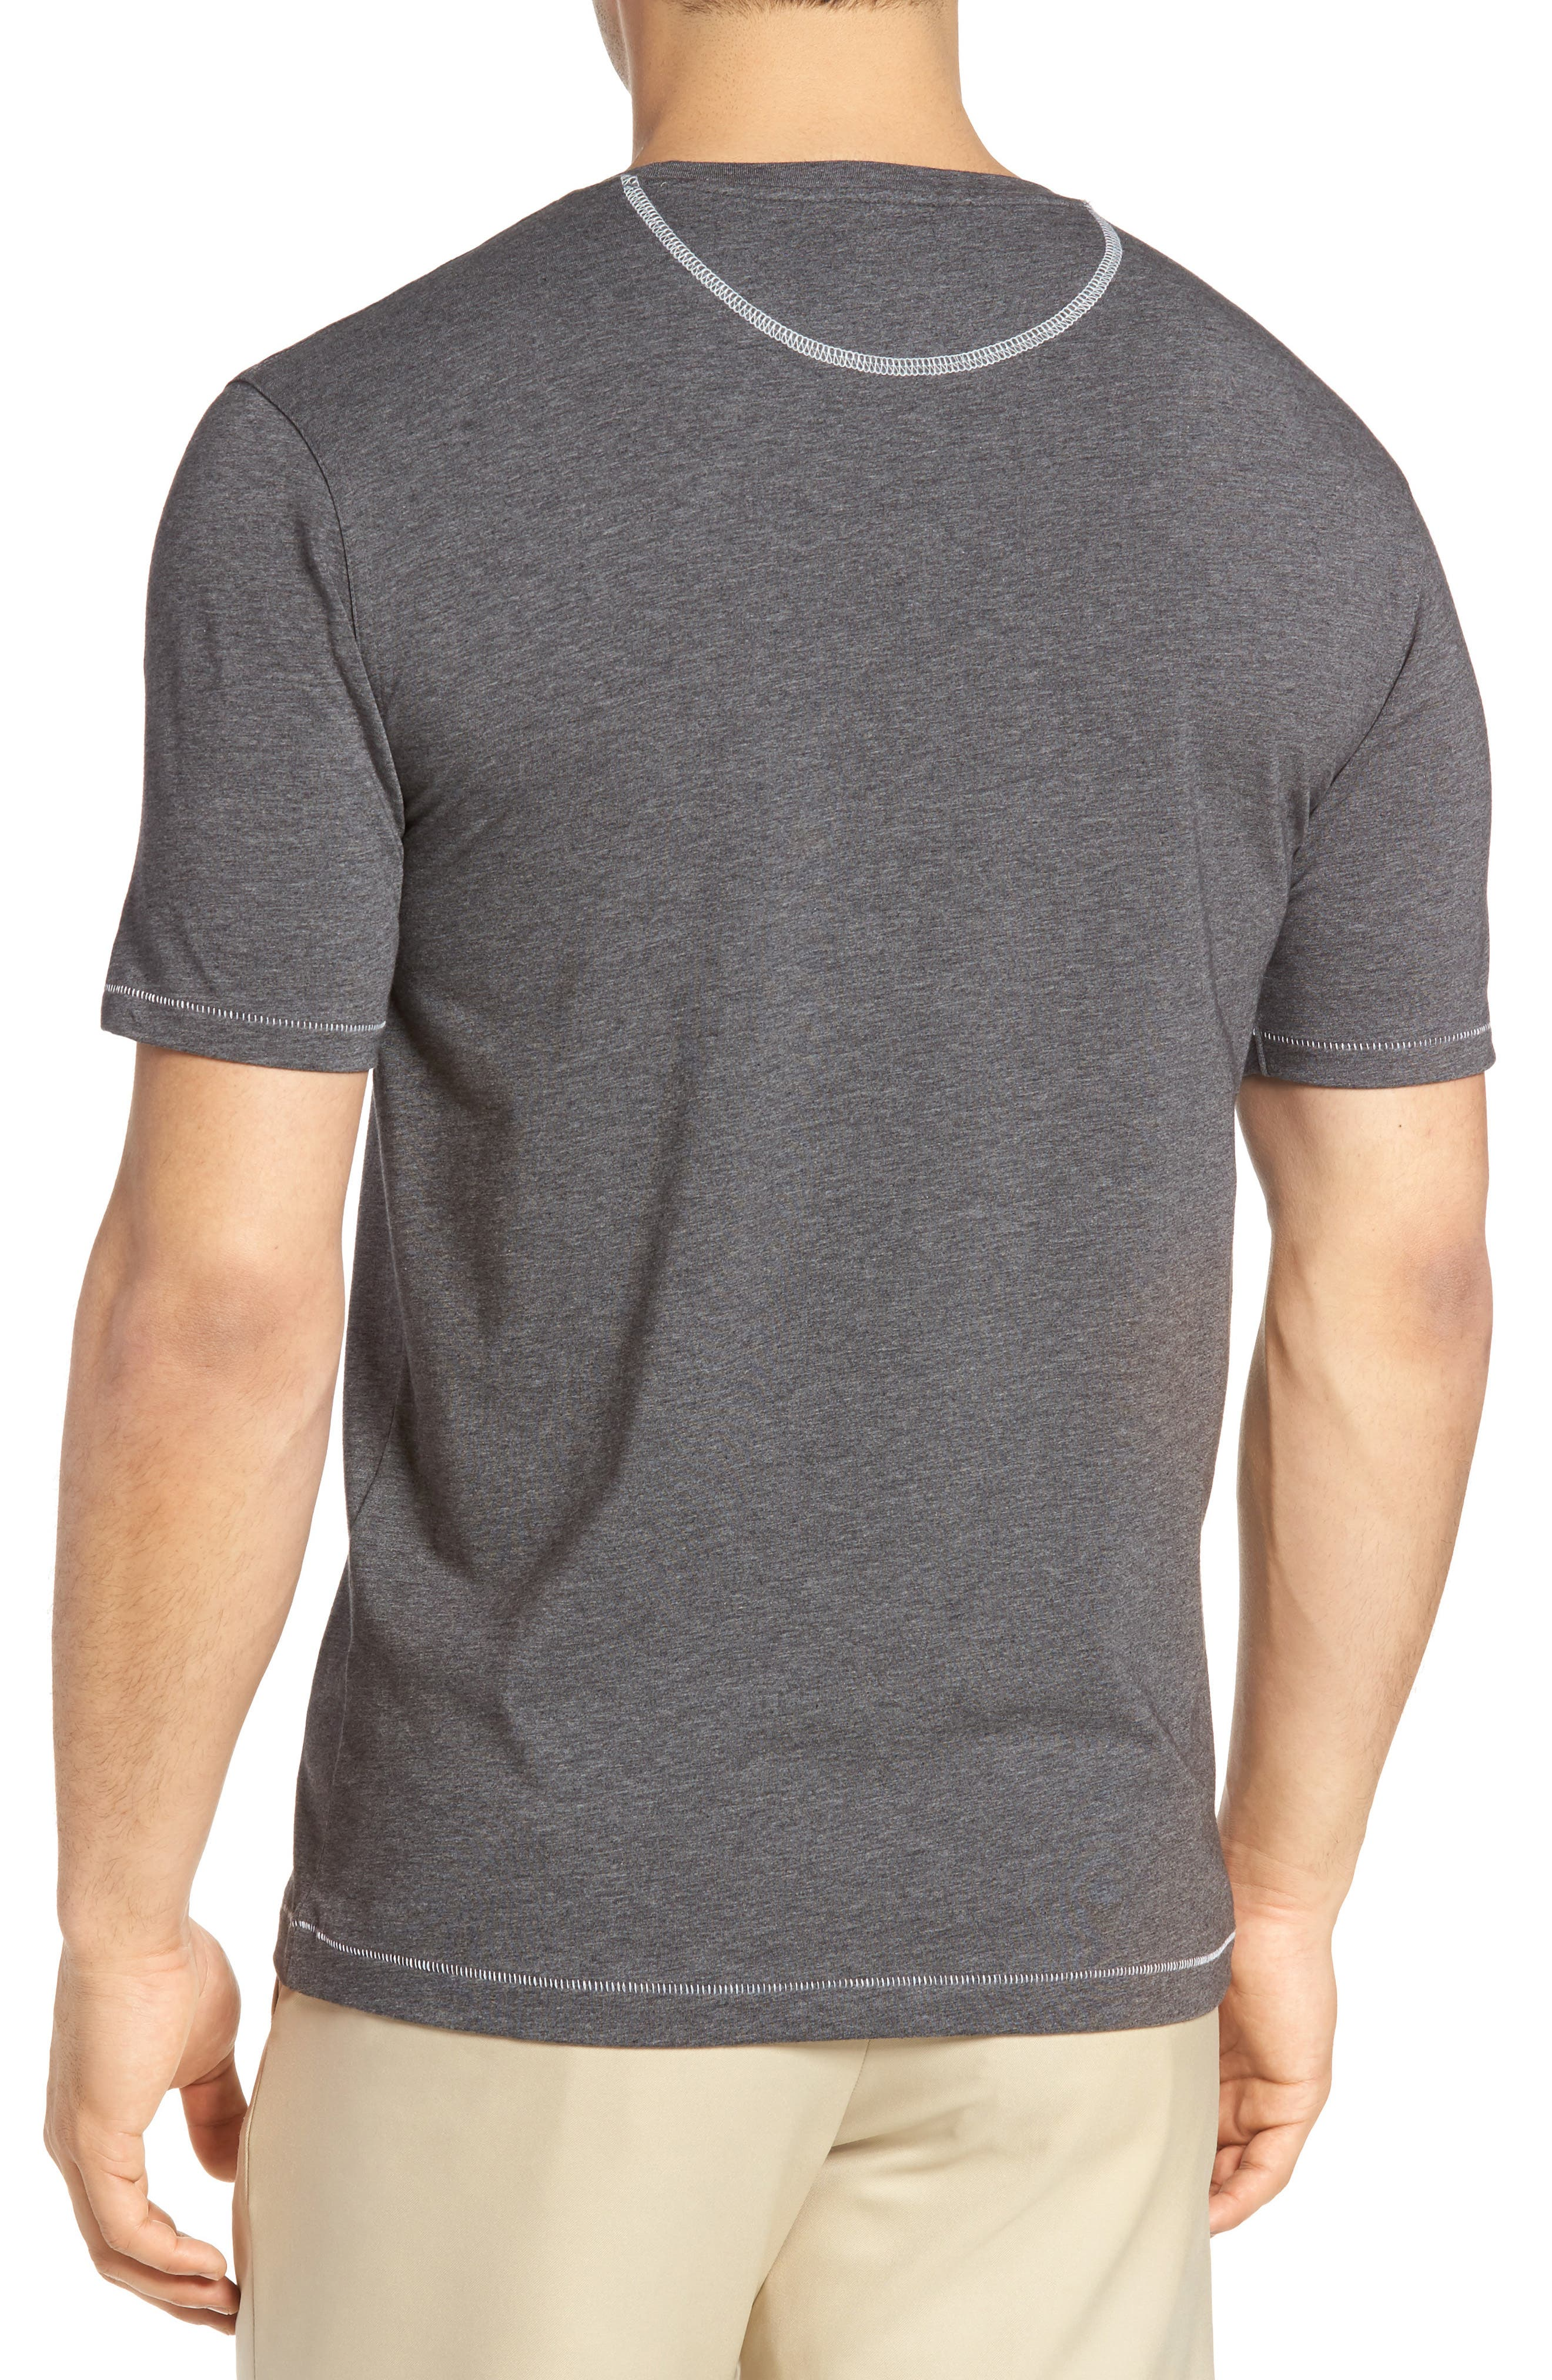 R18 Pocket T-Shirt,                             Alternate thumbnail 2, color,                             Charcoal Heather